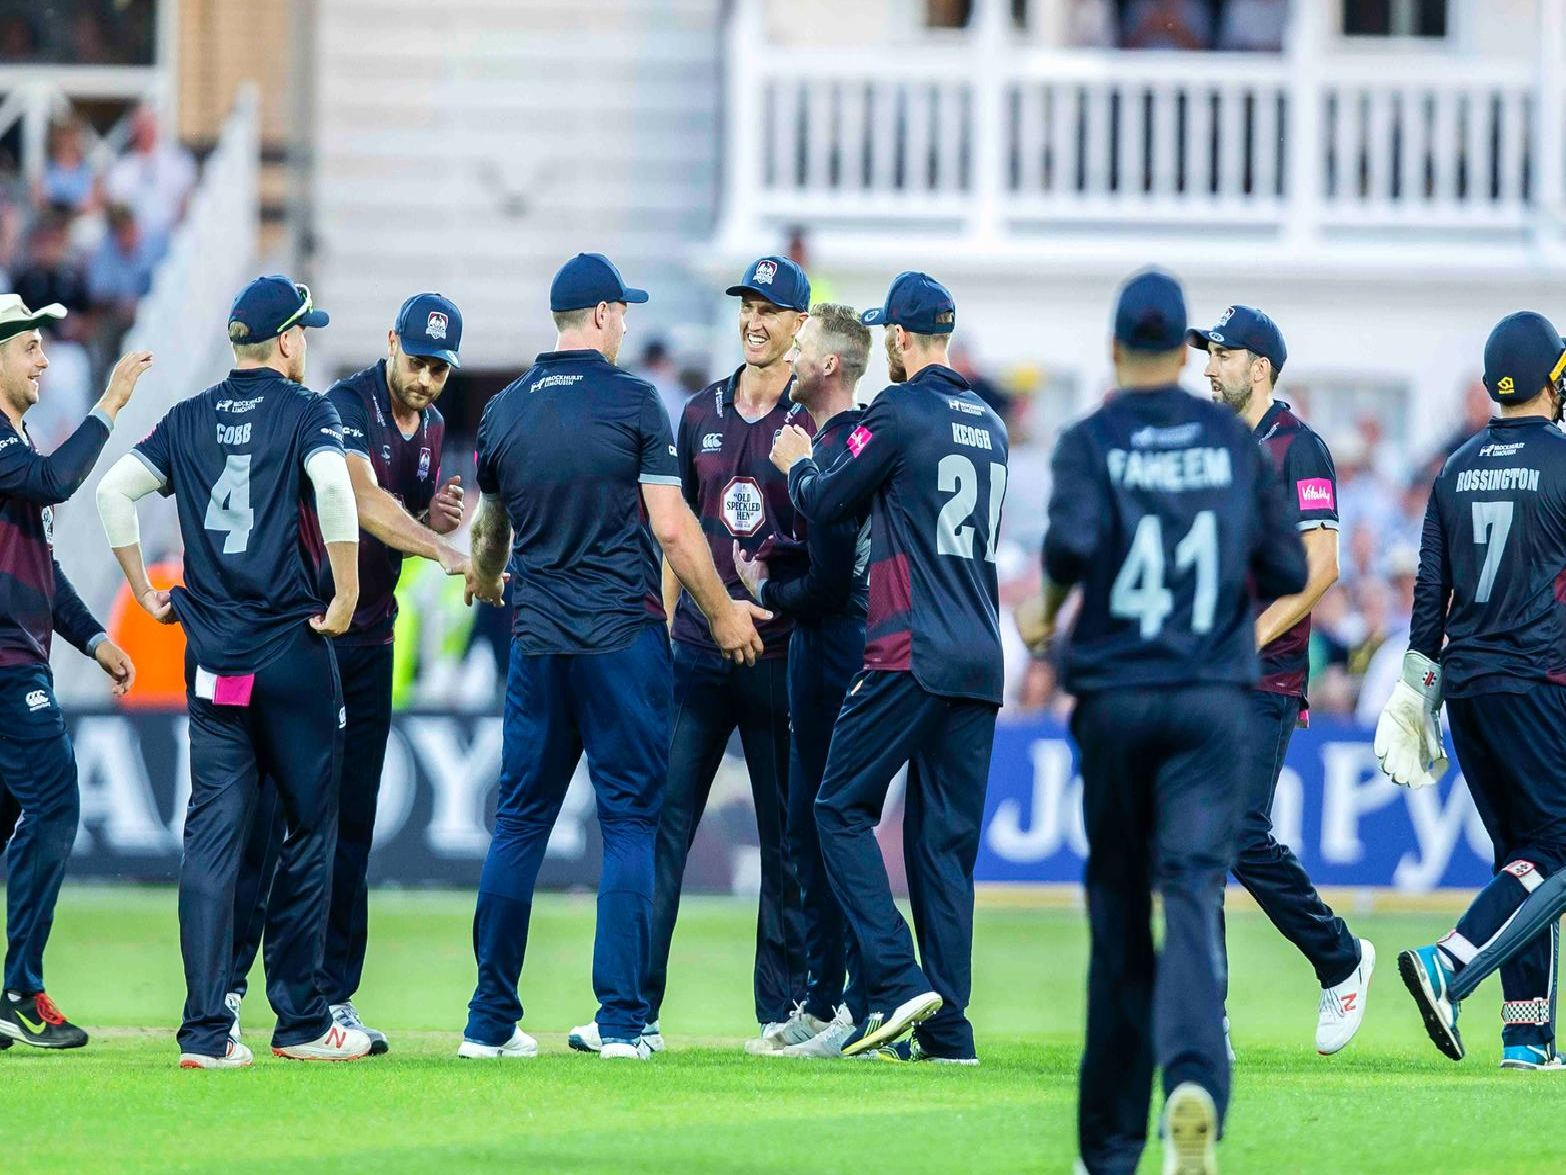 Northants Steelbacks celebrate claiming a wicket in their Vitality Blast T20 defeat at Notts Outlaws